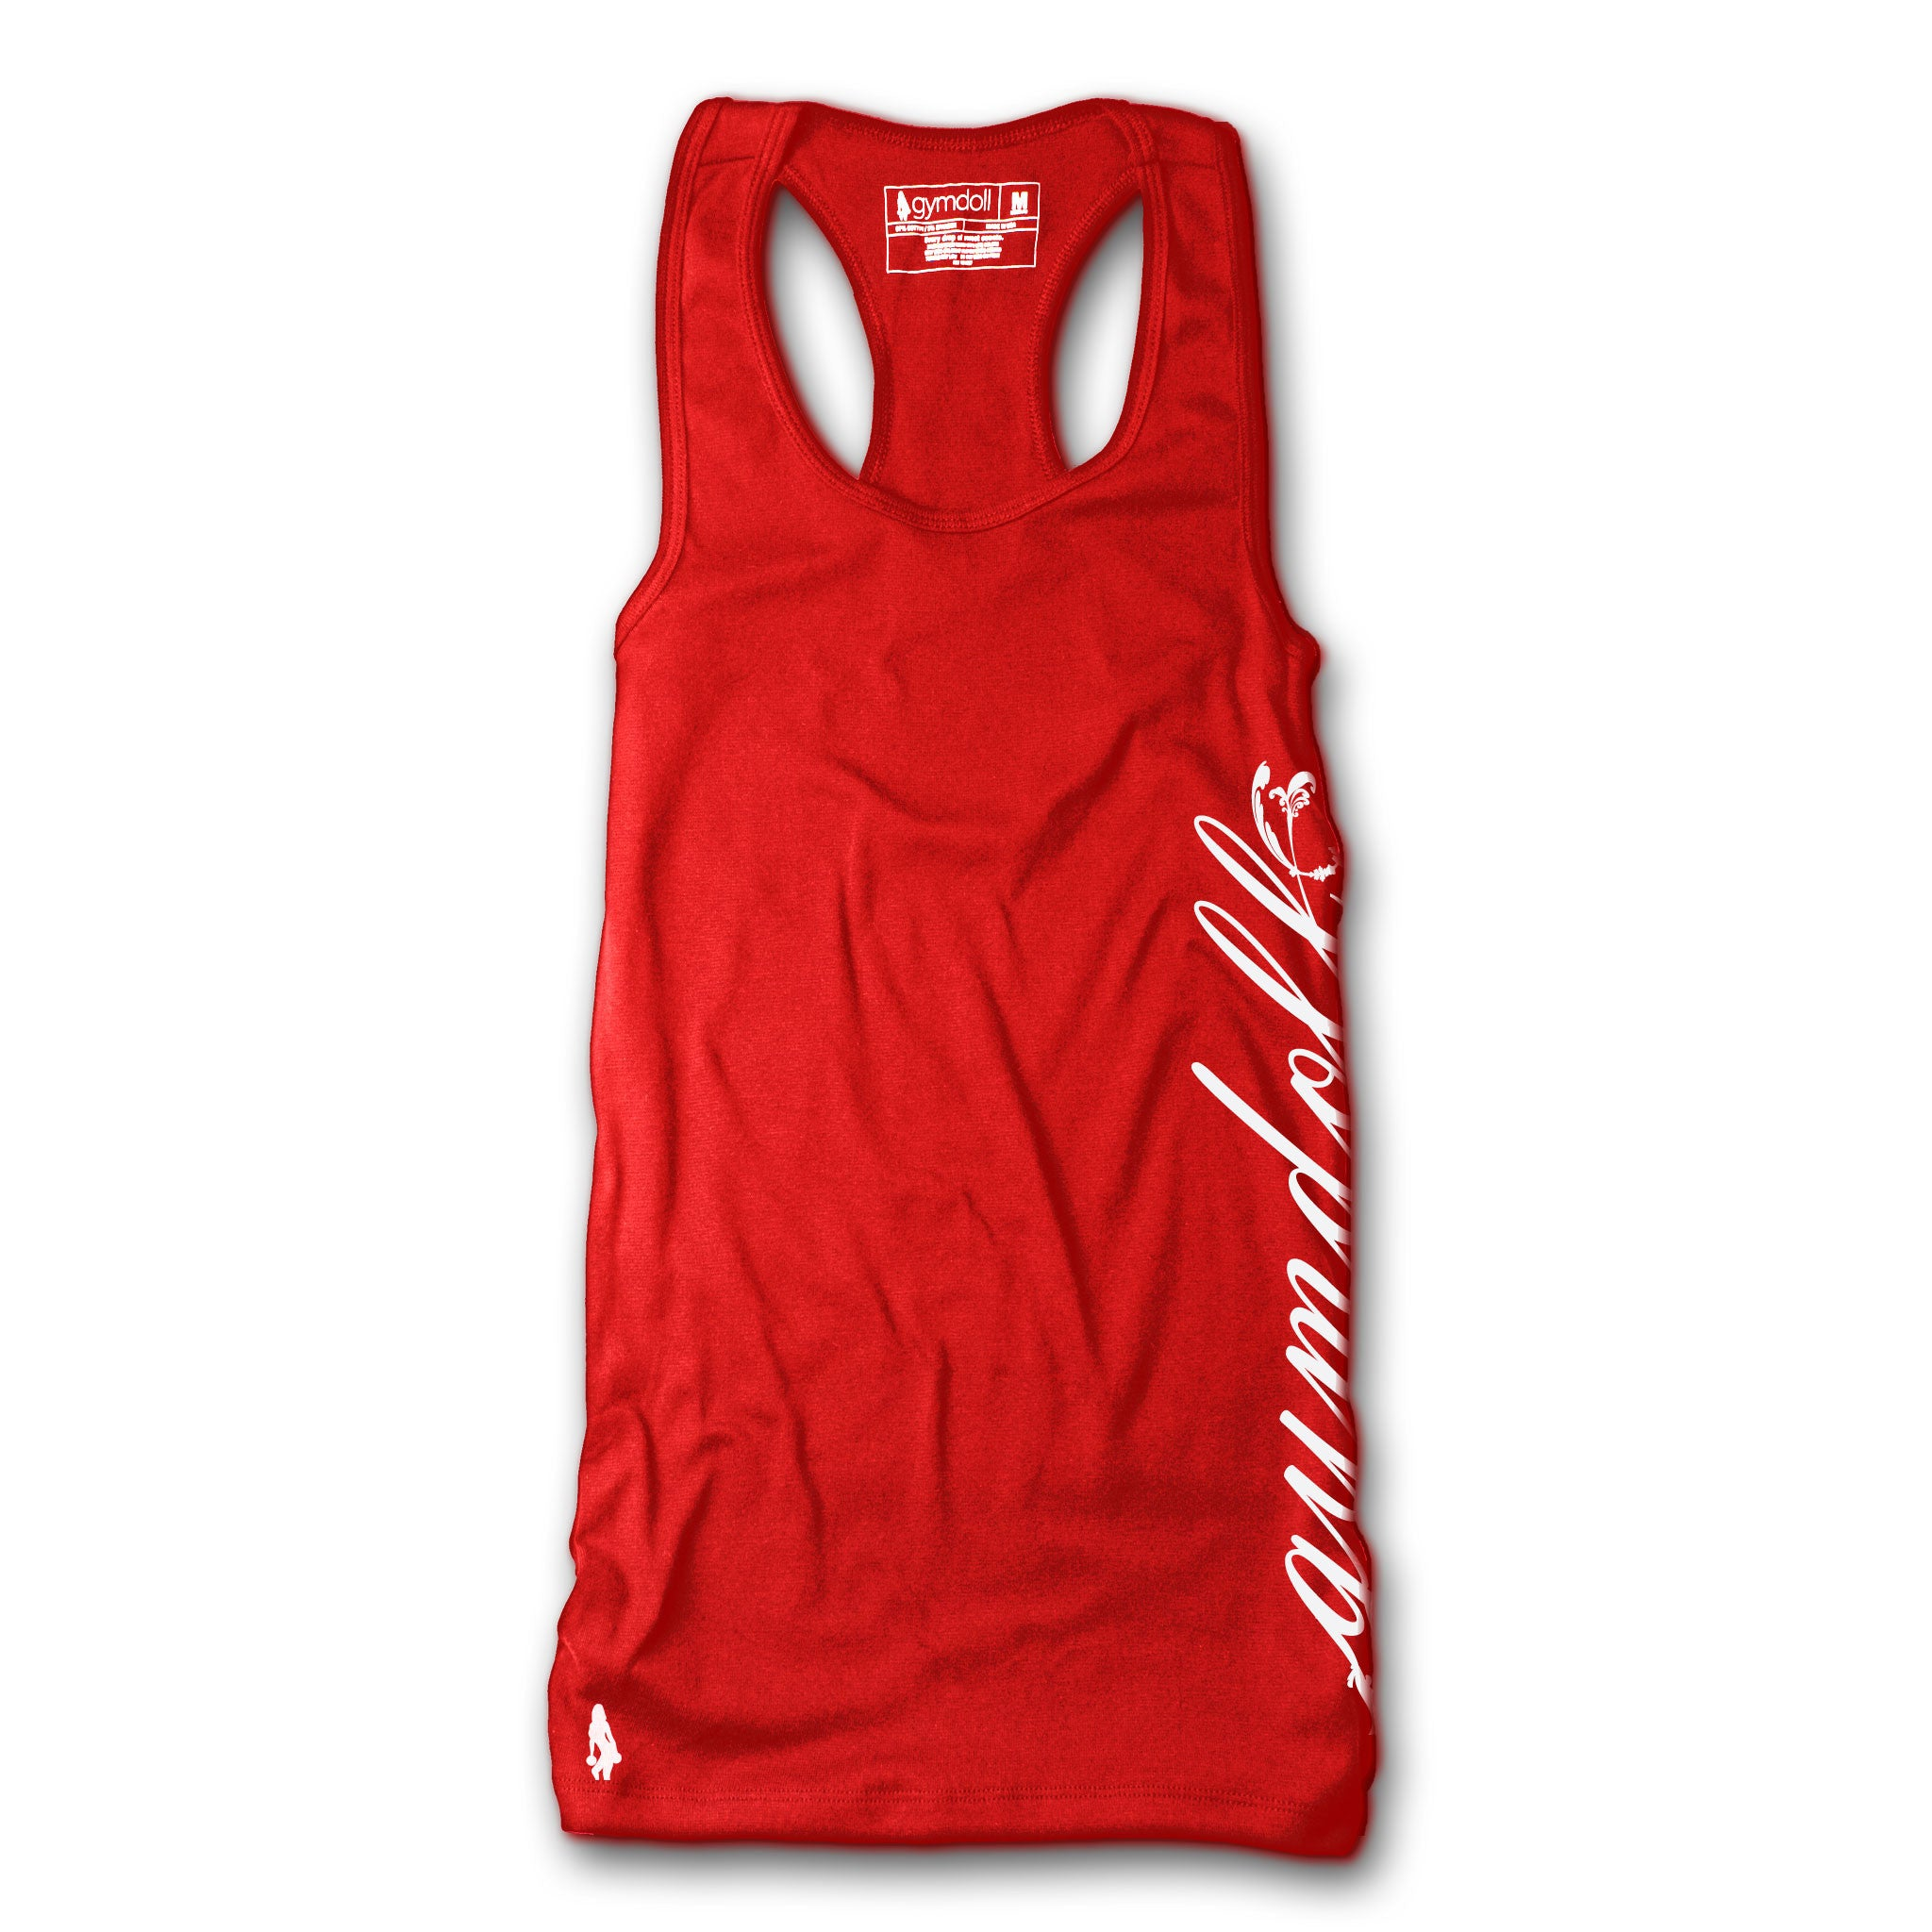 Gymdoll Racerback Active Tank - Cursive - Red/White